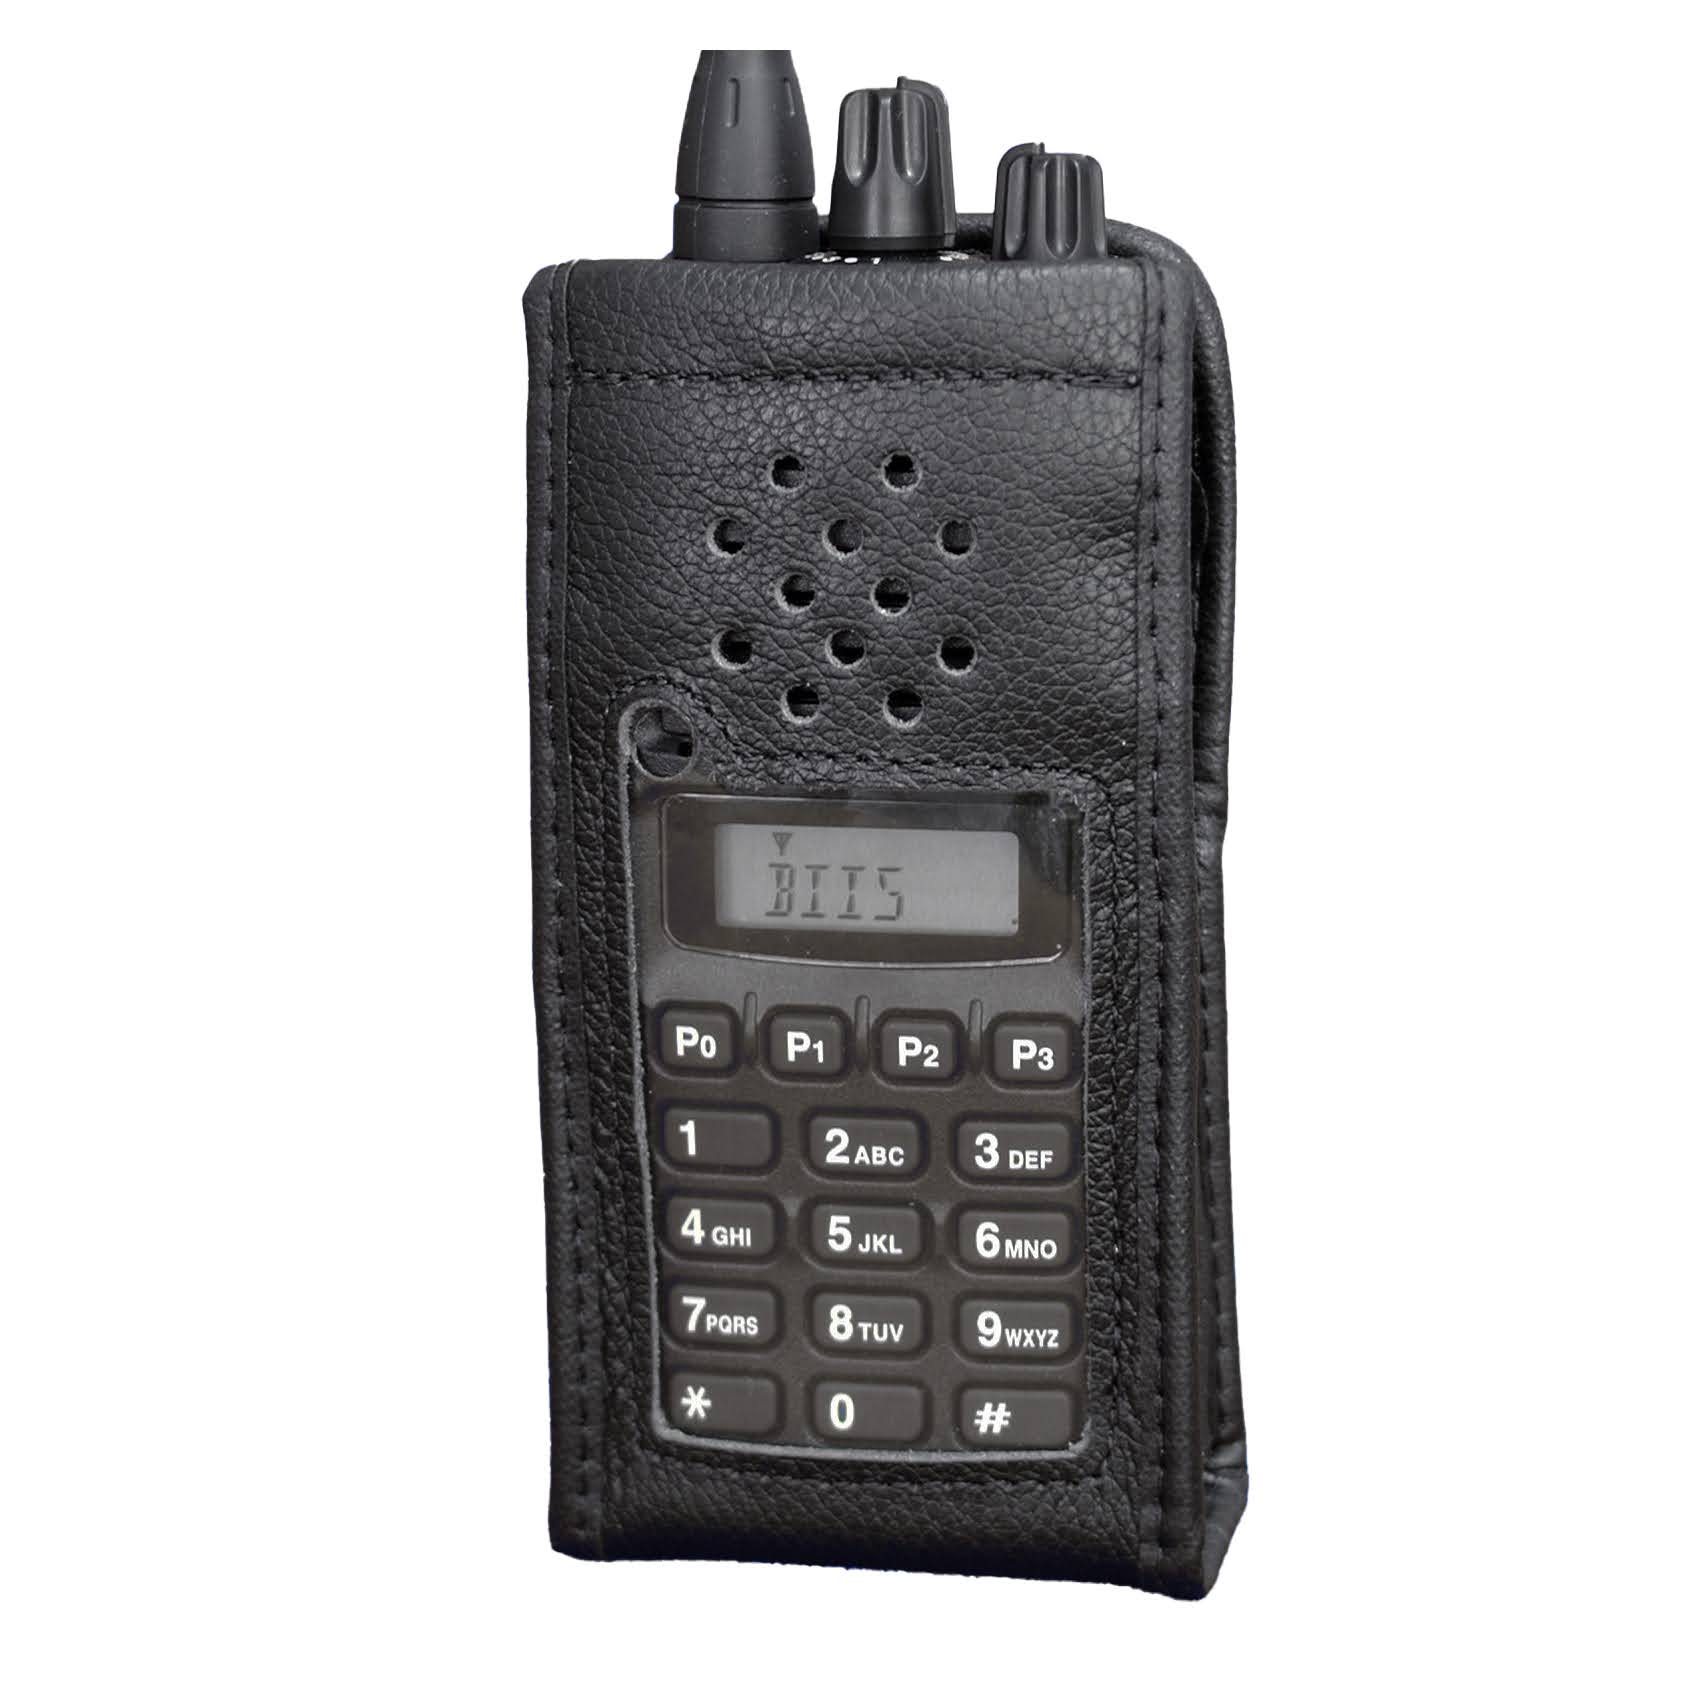 Radio case for Icom IC-F44GT